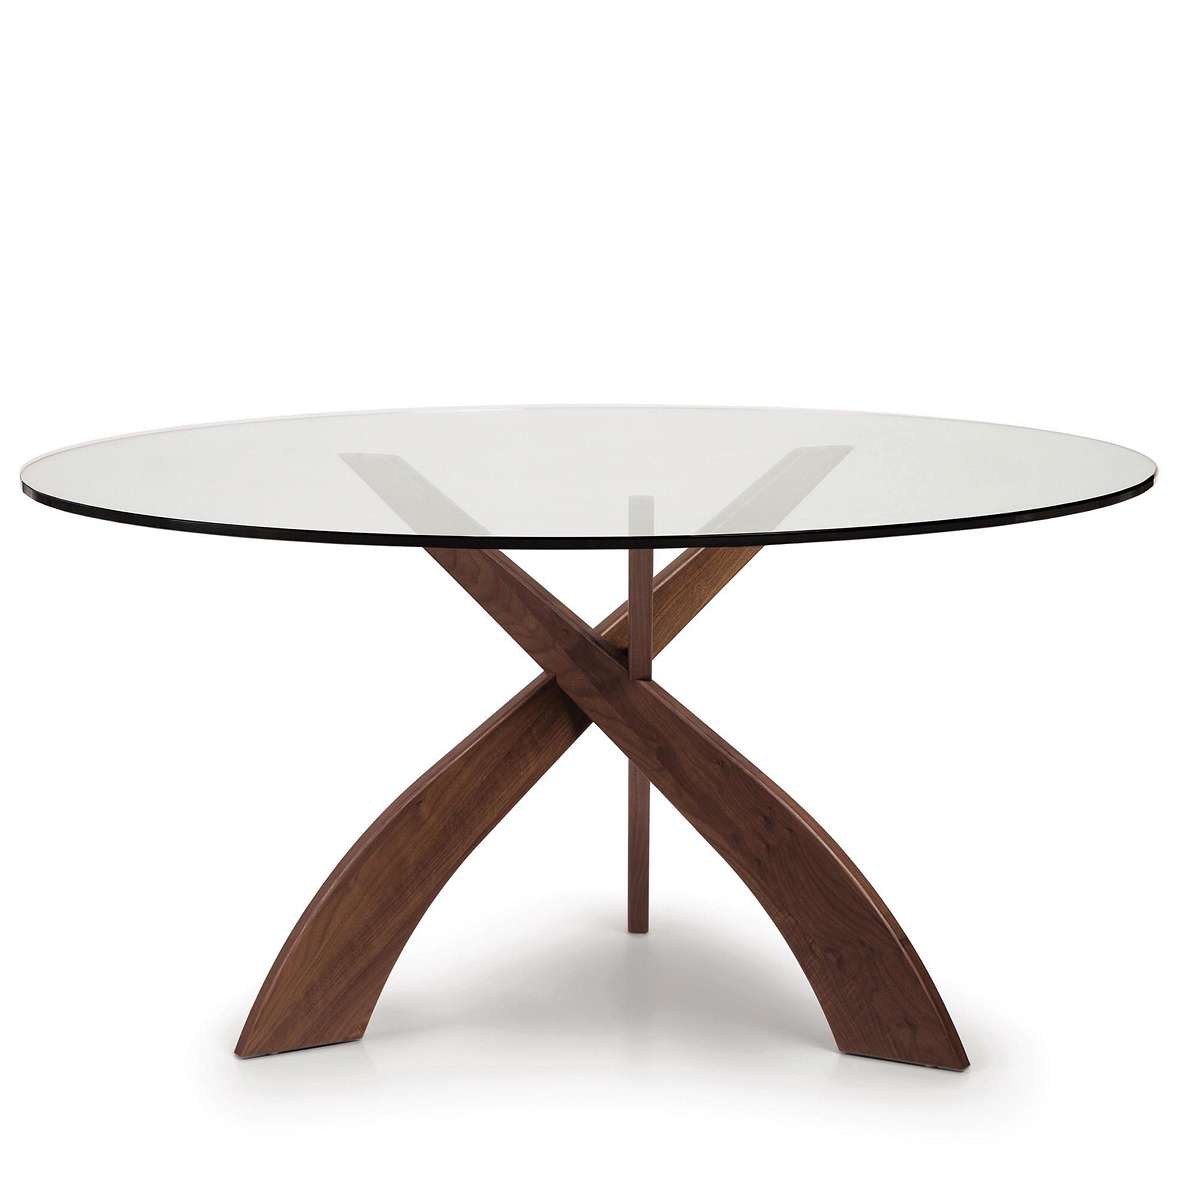 Round Dining Tables With Glass Top With Widely Used Entwine Round Glass Top Dining Table (View 21 of 30)